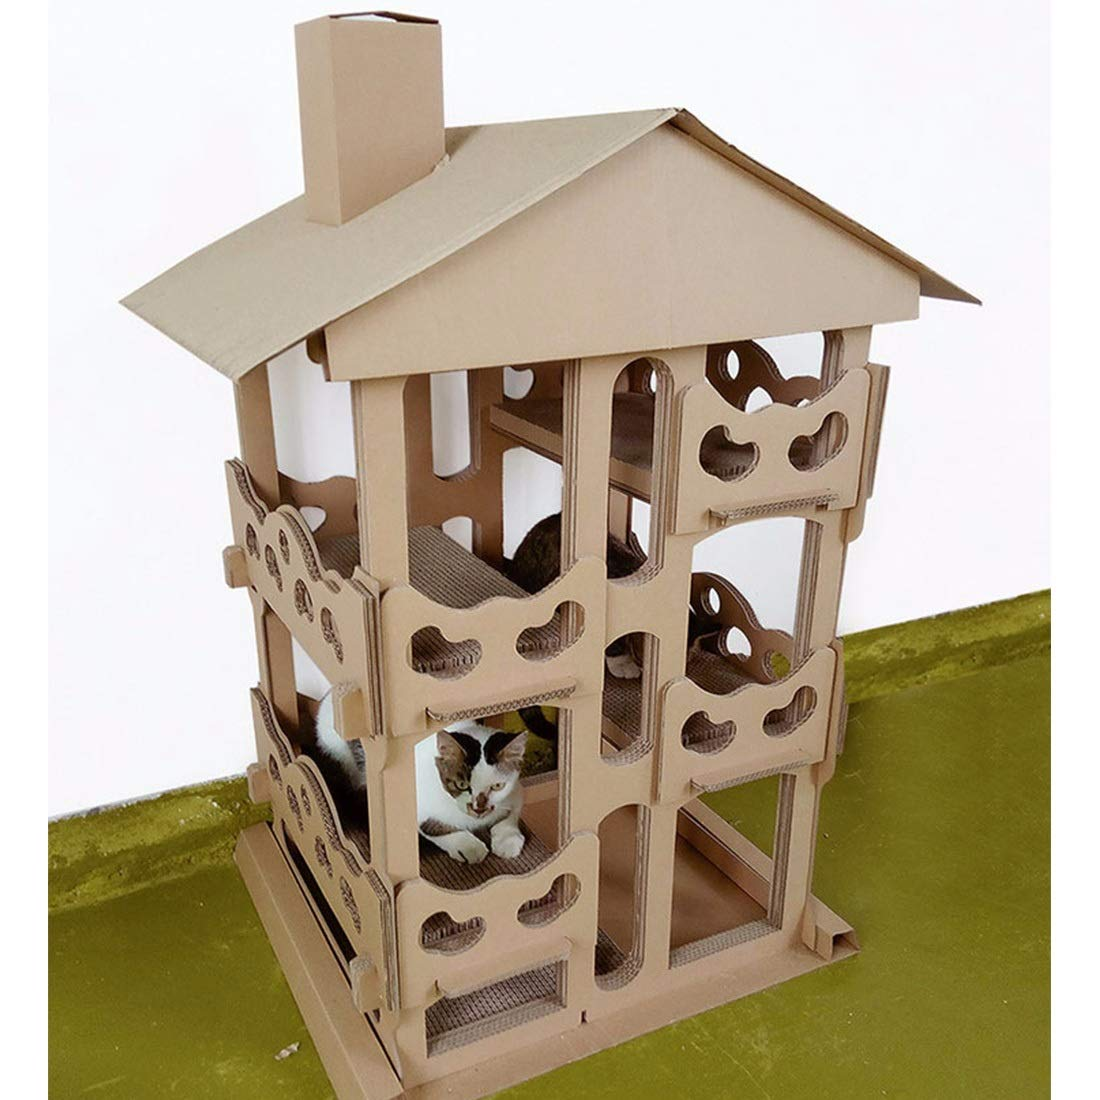 GUGEI Cartón Cat House Scratcher Bed Cave Nest Nest Cat Cat Climbing Frame Cat Condos Cat Scratch Post (Color : Cat Villa): Amazon.es: Hogar